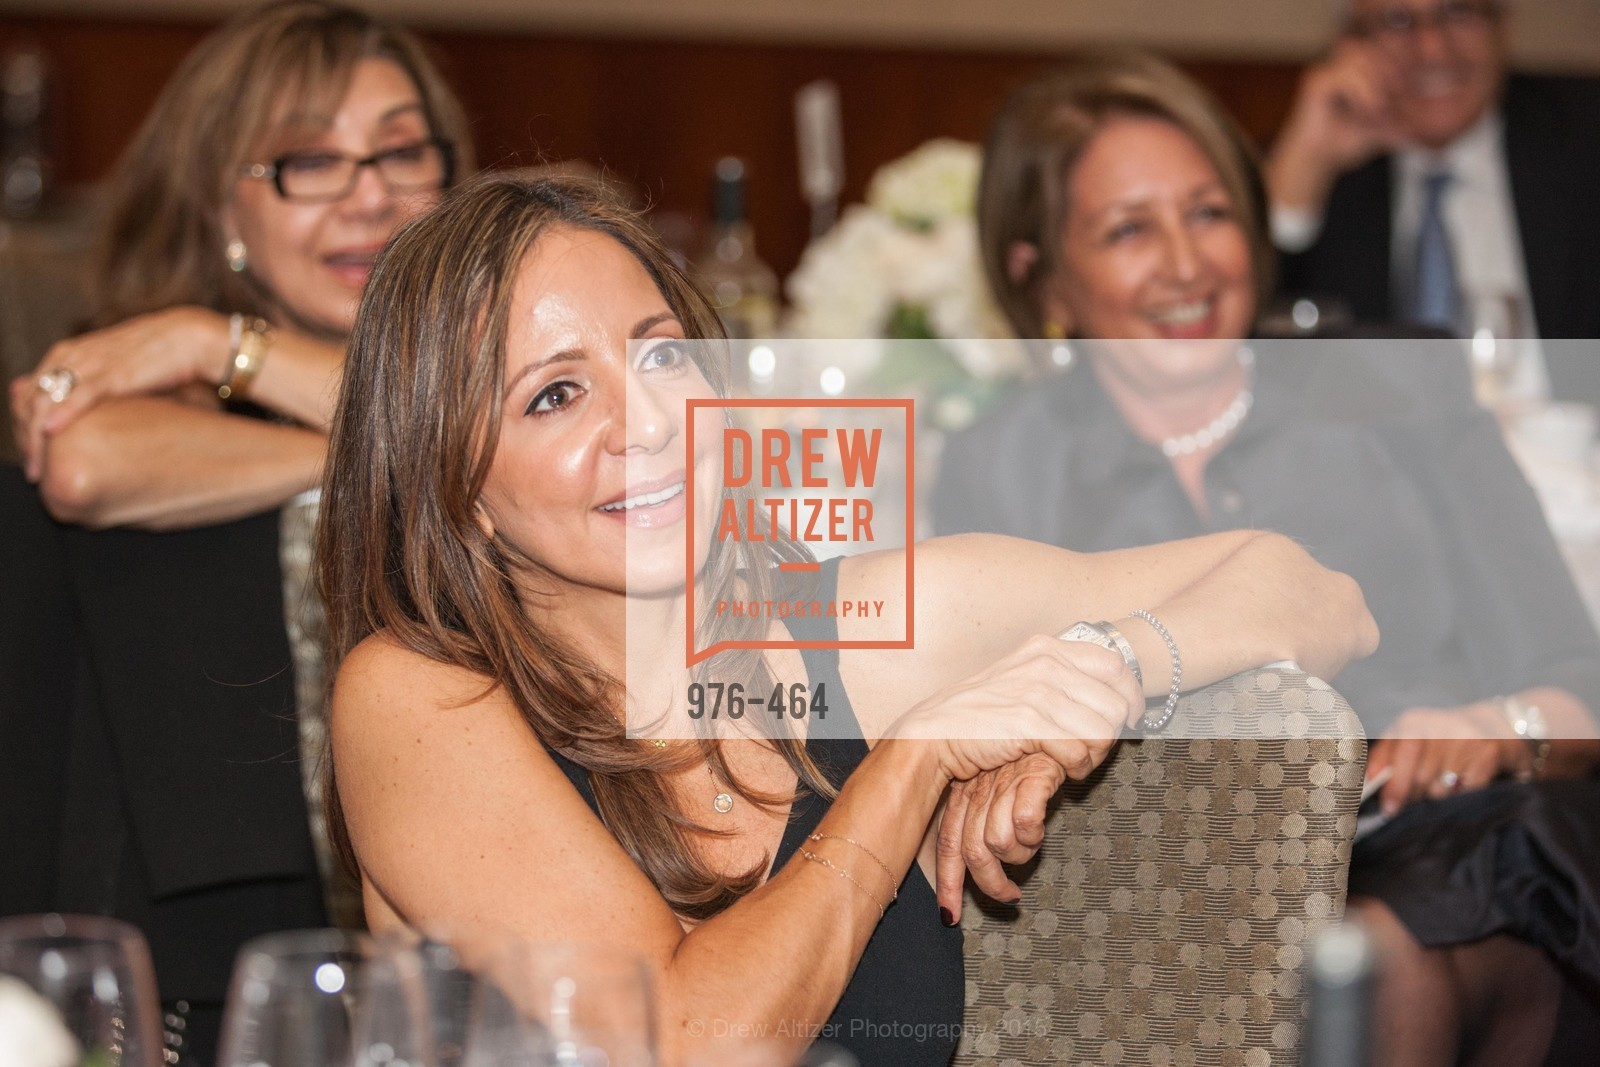 Ali Zadeh, Operation Smile Presents THE SAN FRANCISCO 2015 SMILE GALA, InterContinental Hotel, November 7th, 2015,Drew Altizer, Drew Altizer Photography, full-service agency, private events, San Francisco photographer, photographer california